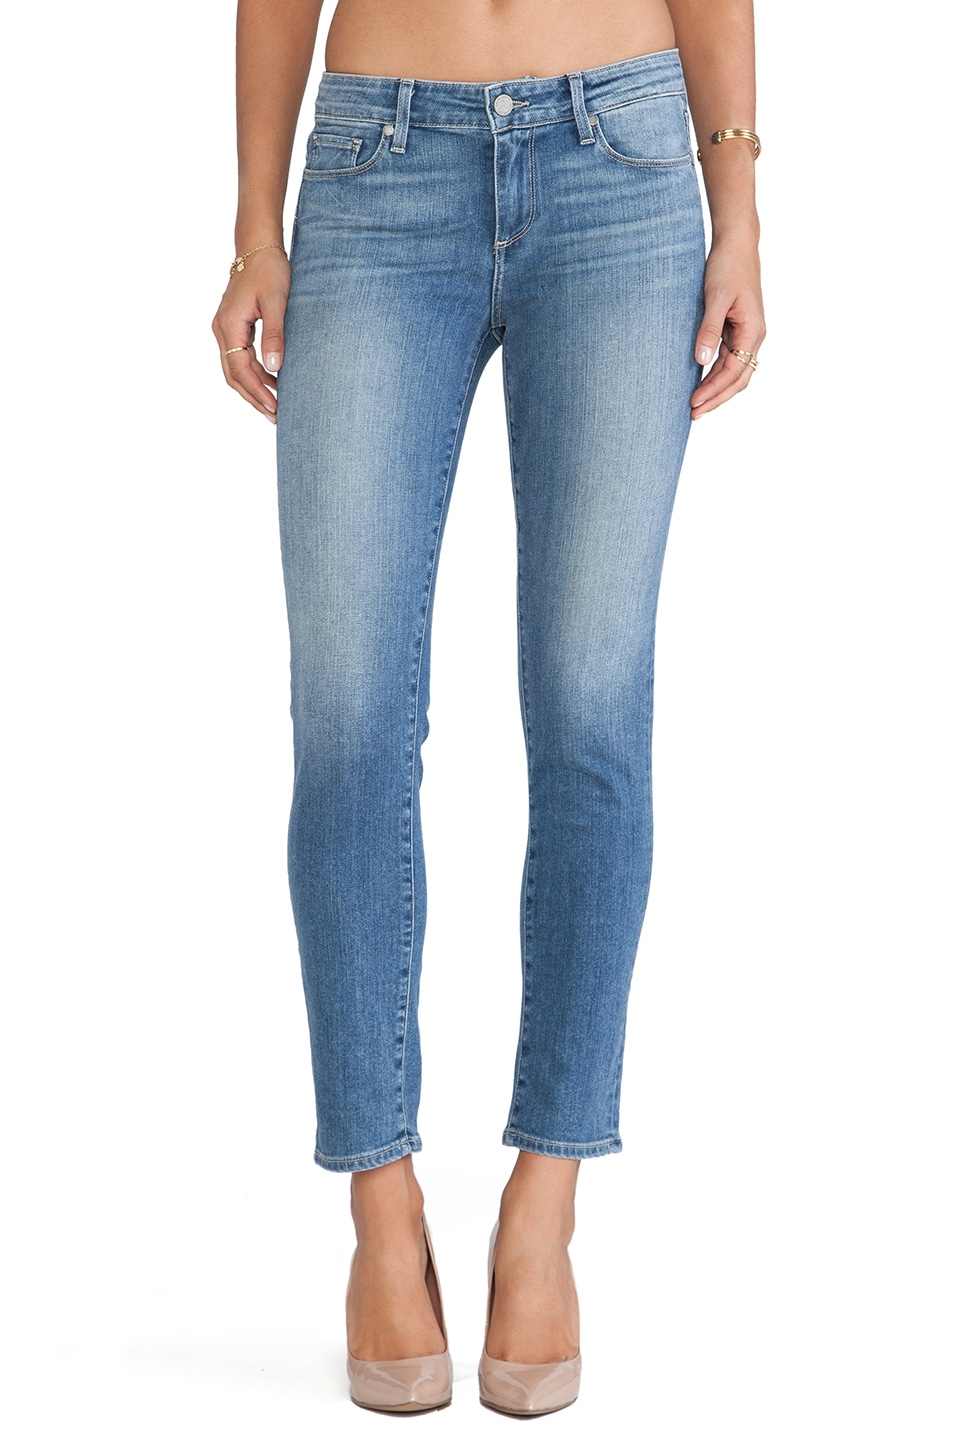 Paige Denim Skyline Ankle Peg in Nico